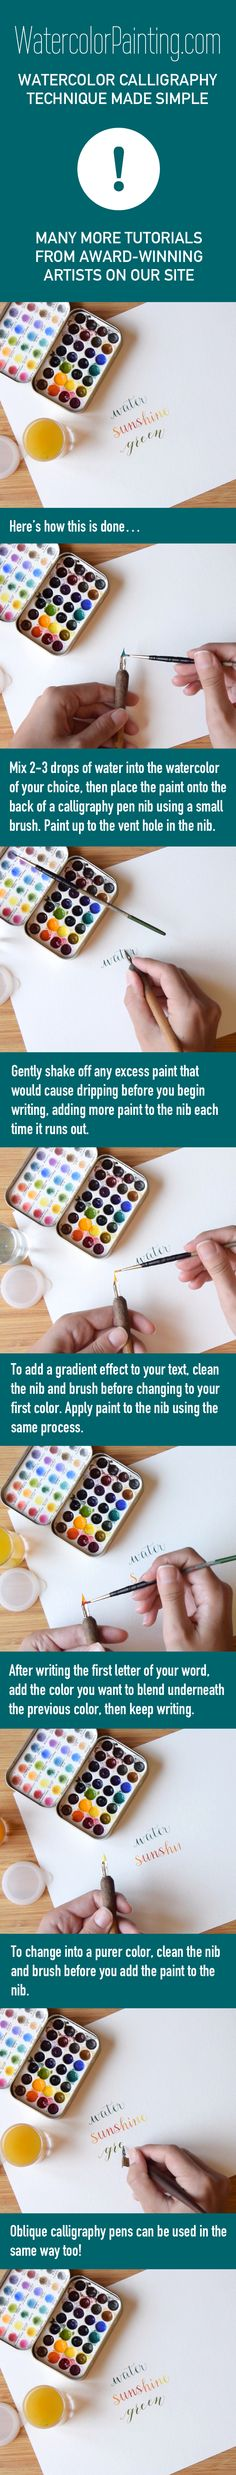 Click here for free full tutorial: http://bit.ly/1Mb3vg4 Includes video. Learn this fun watercolor technique for watercolor calligraphy, step-by-step. It's a unique project for unique results. Various beginner, intermediate & advanced watercolor techniques are taught on this site. #paintingideas